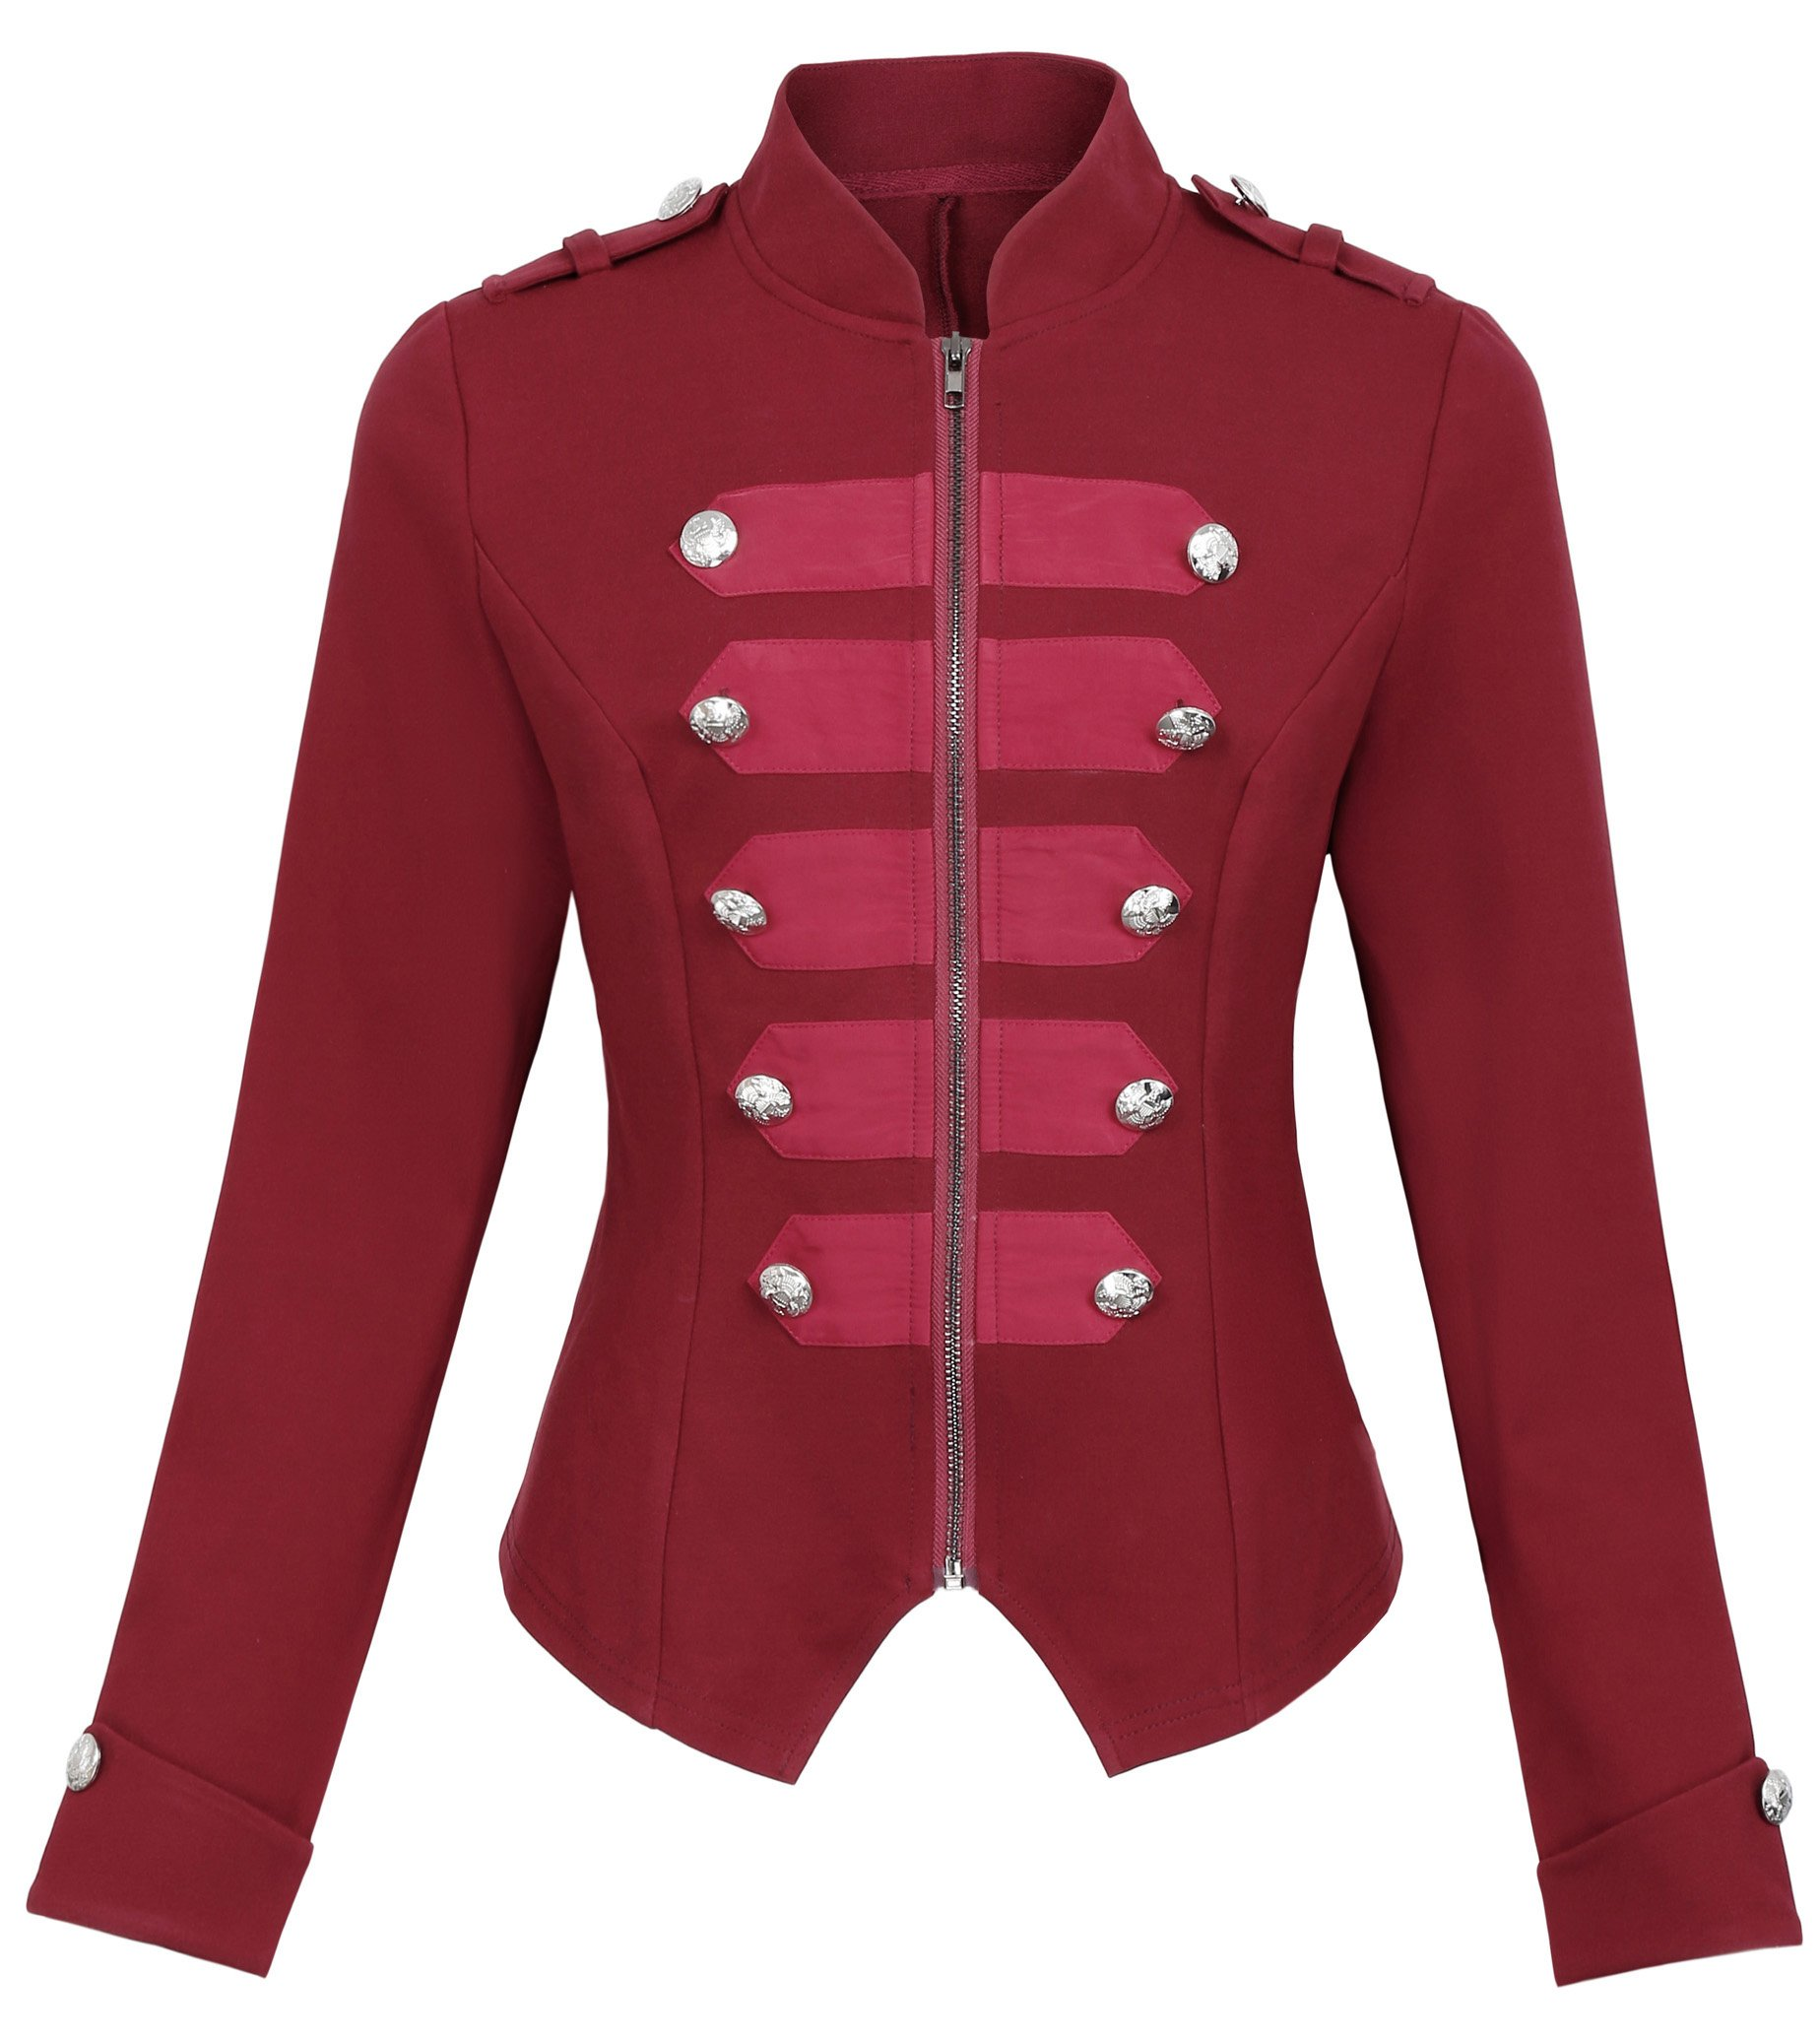 Kate Kasin Gothic Steampunk Military Blazer Ringmaster Jacket Top for Halloween KK464-3 Red Size M